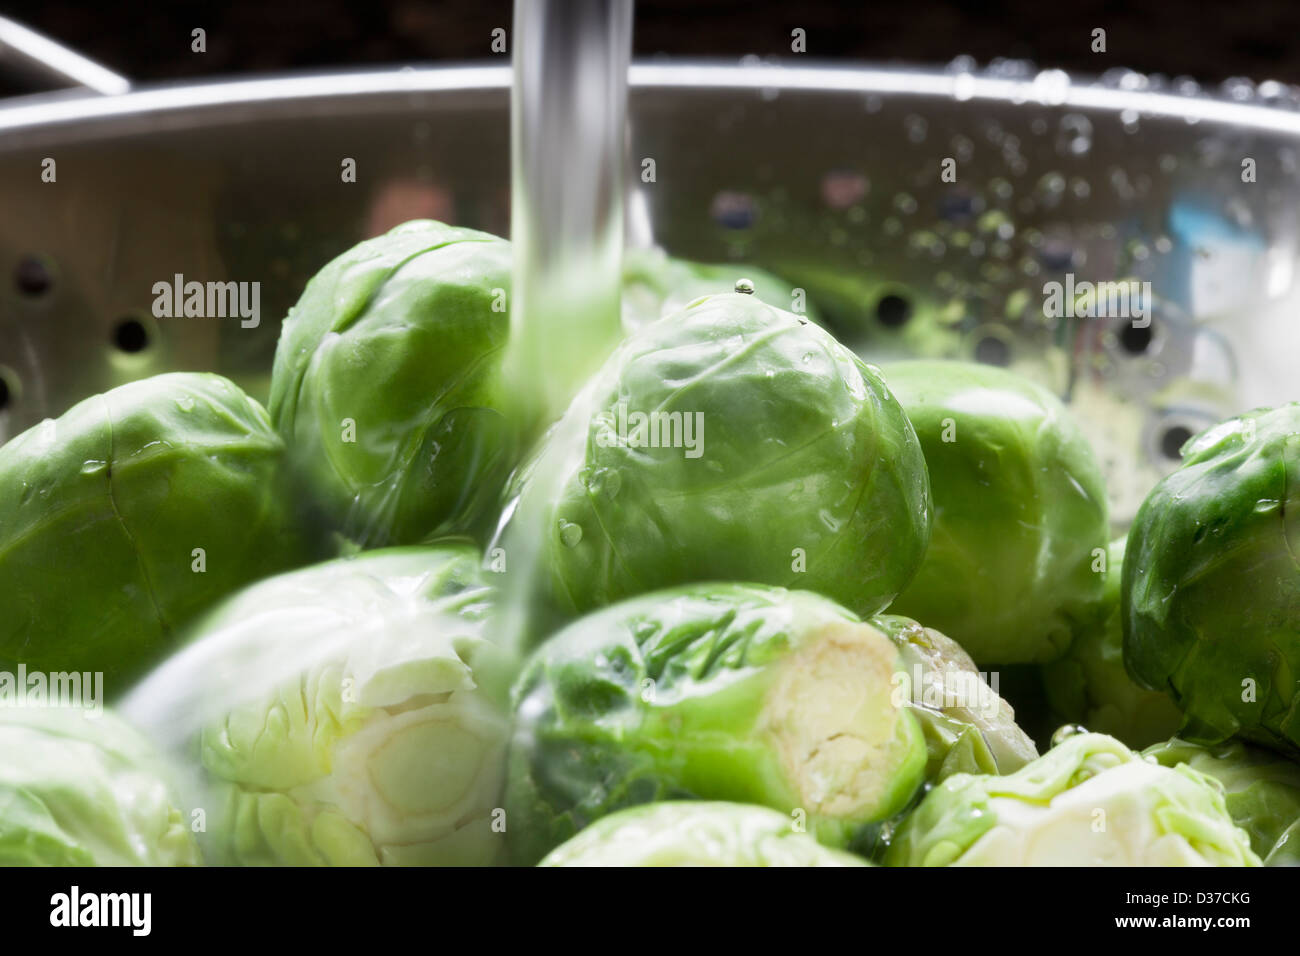 Close up of brussels sprouts being rinsed in colander - Stock Image